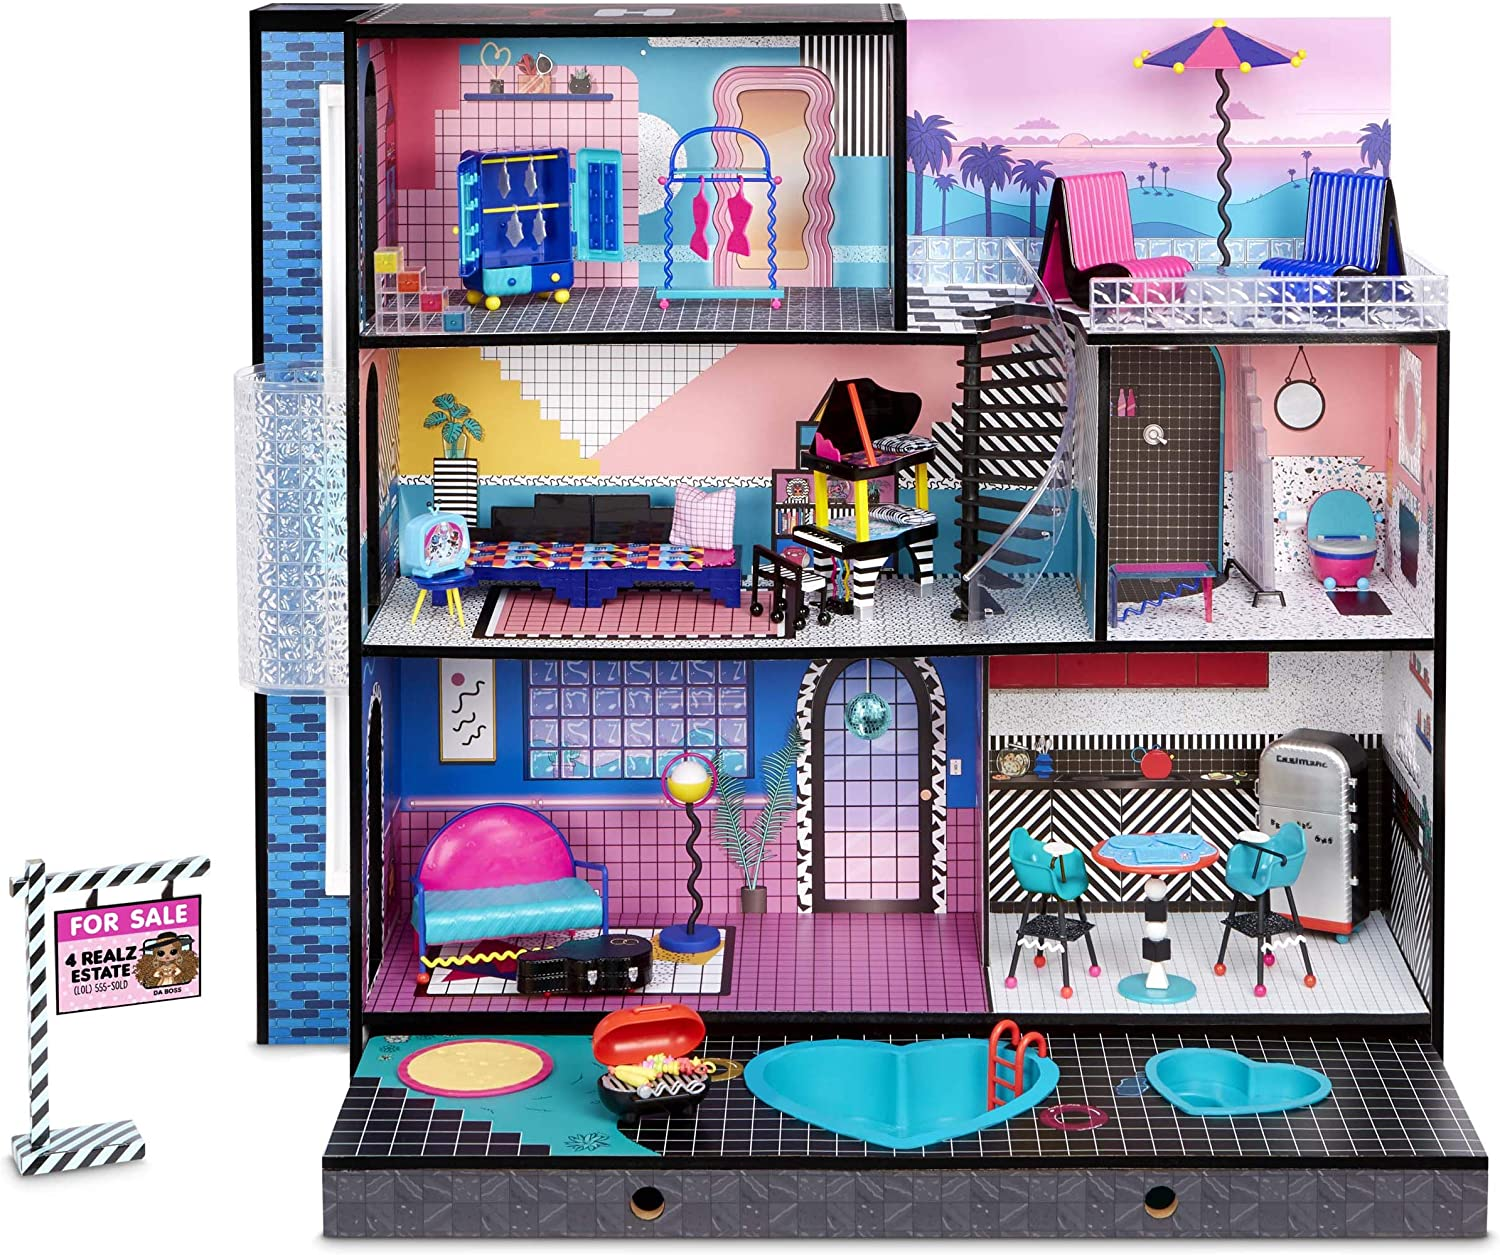 LOL Surprise OMG House – New Real Wood Doll House with 85+ Surprises | 3 Stories, 6 Rooms including Elevator, Tub, Pool, Patio, Living Room, Kitchen, Piano Bedroom, Bathroom, and Fashion Closet